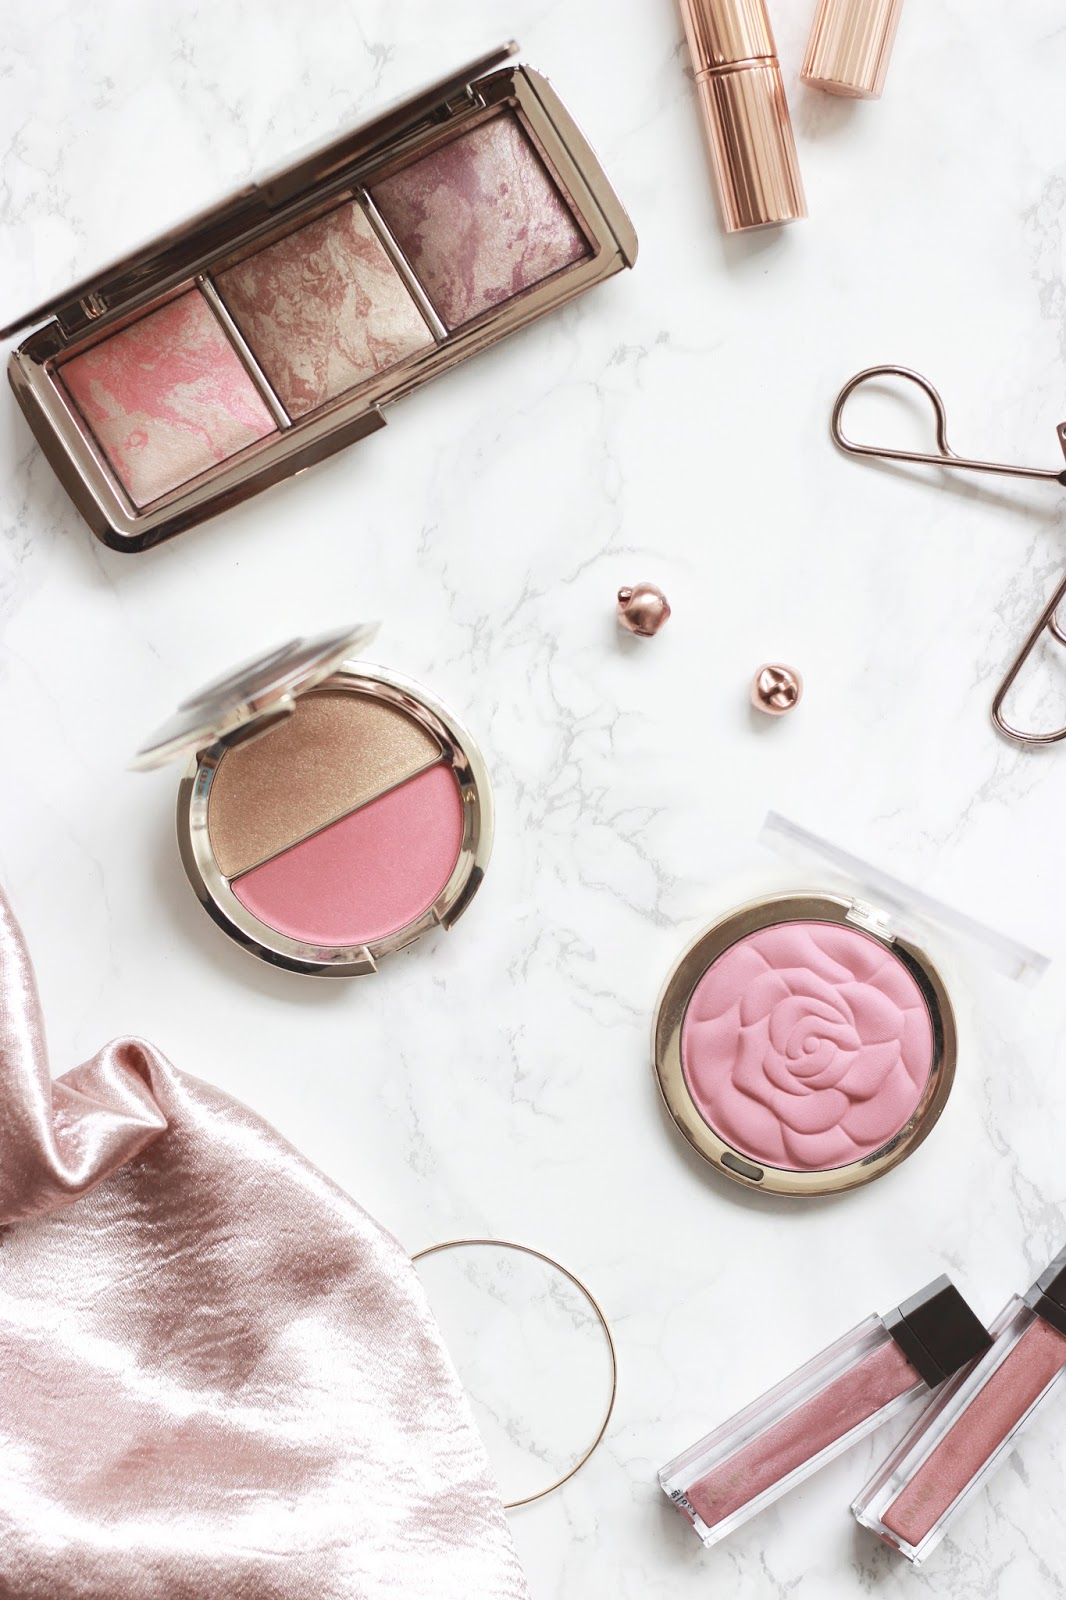 Hourglass Strobe Lighting Blusher, NYX ombre blush, milani rose blusher